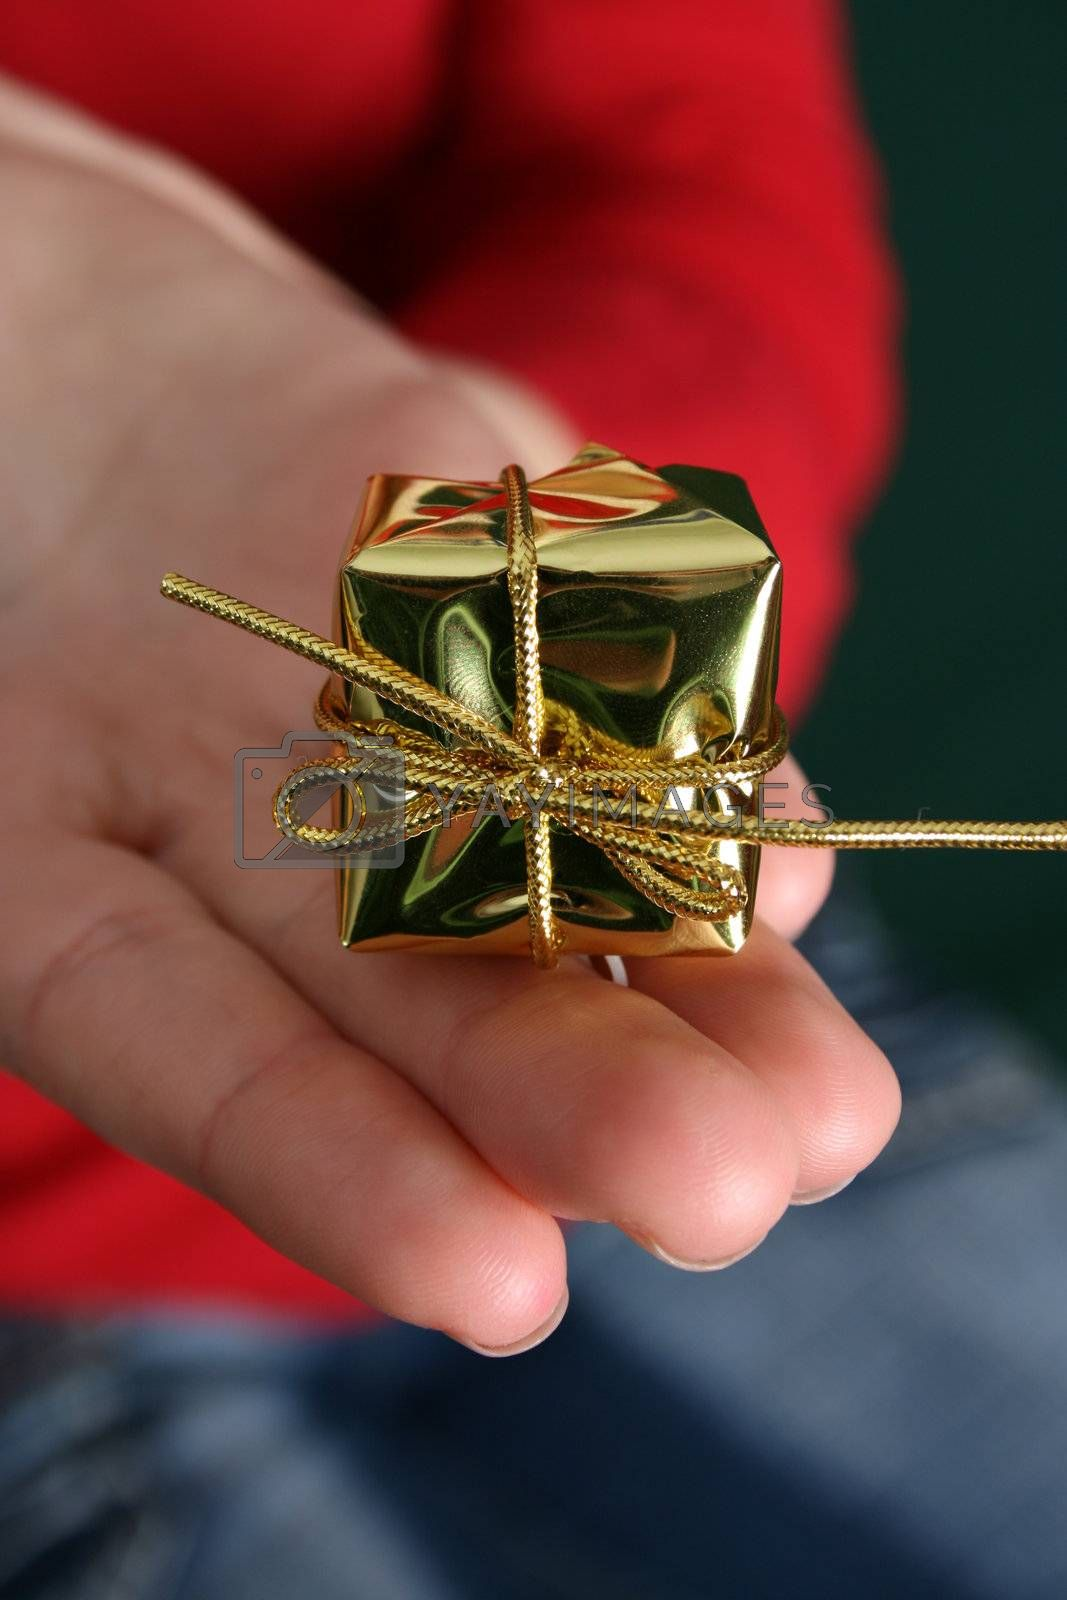 Small Christmas gift held by a caucasian female